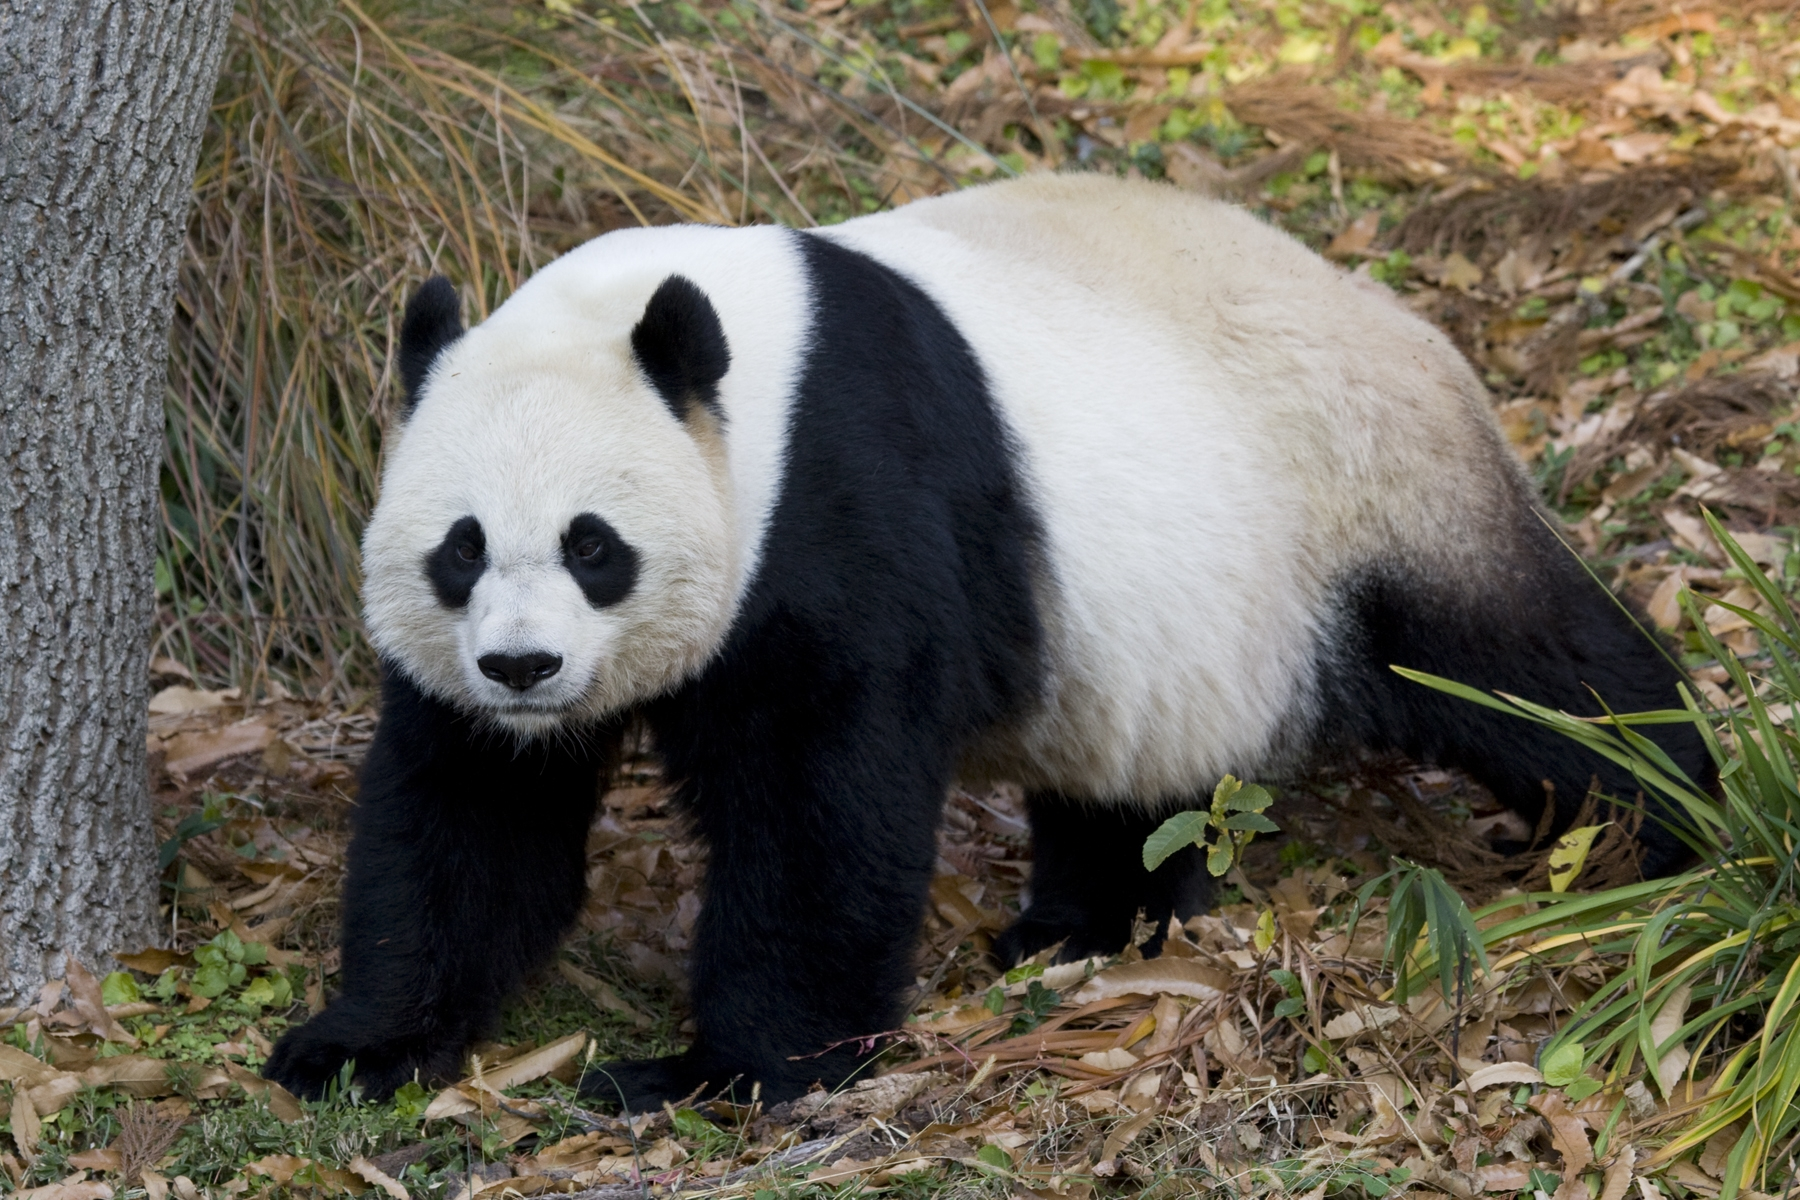 Panda habitat to be lost, shifted by climate change | Smithsonian ...